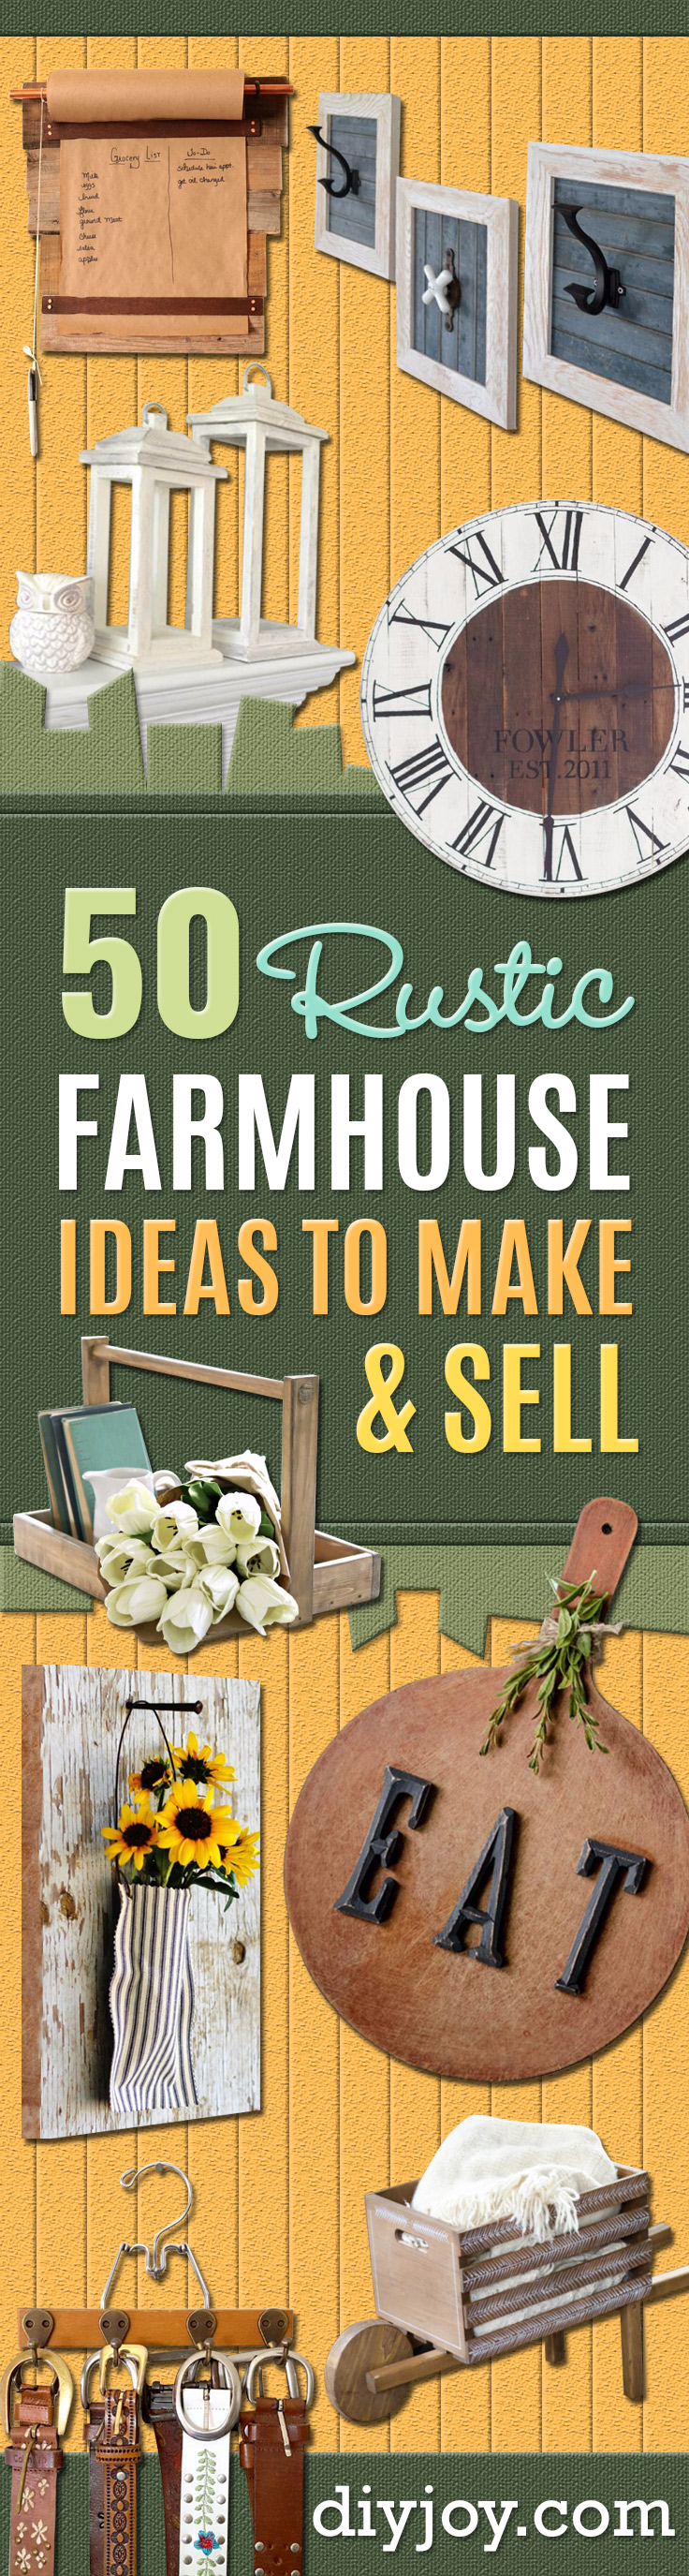 Farmhouse Decor to Make And Sell - Easy DIY Home Decor and Rustic Craft Ideas - Step by Step Country Crafts, Farmhouse Decor To Make and Sell on Etsy and at Craft Fairs - Tutorials and Instructions for Creative Ways to Make Money - Best Vintage Farmhouse DIY For Living Room, Bedroom, & Etsy Gifts